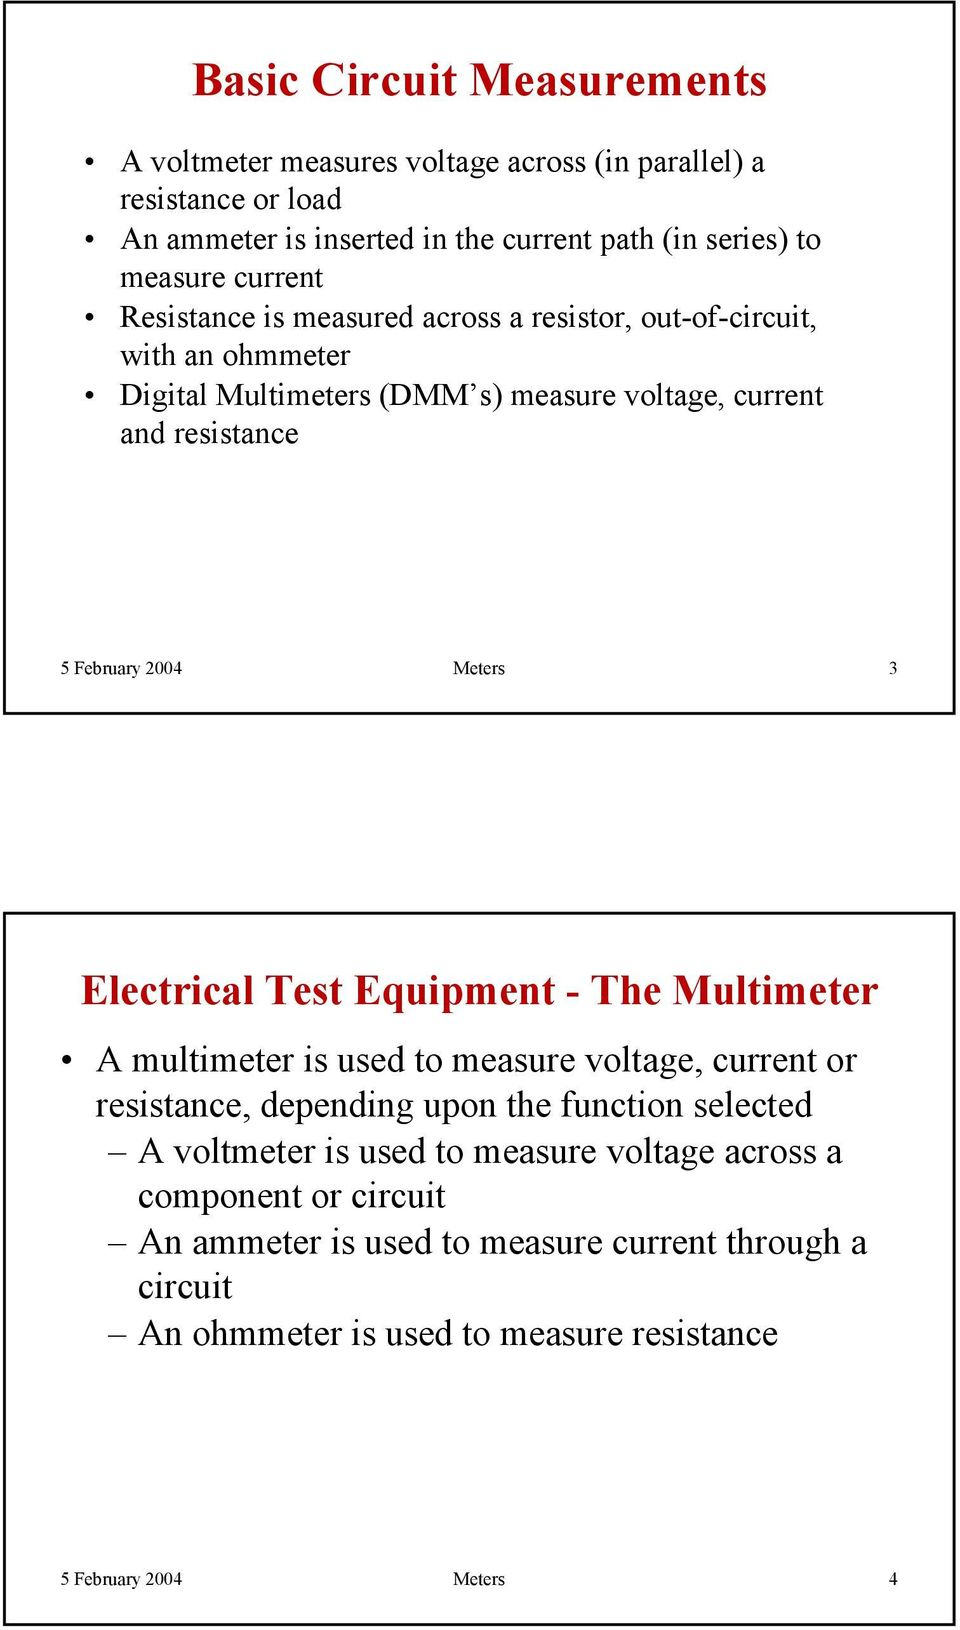 Meters 3 Electrical Test Equipment - The Multimeter A multimeter is used to measure voltage, current or resistance, depending upon the function selected A voltmeter